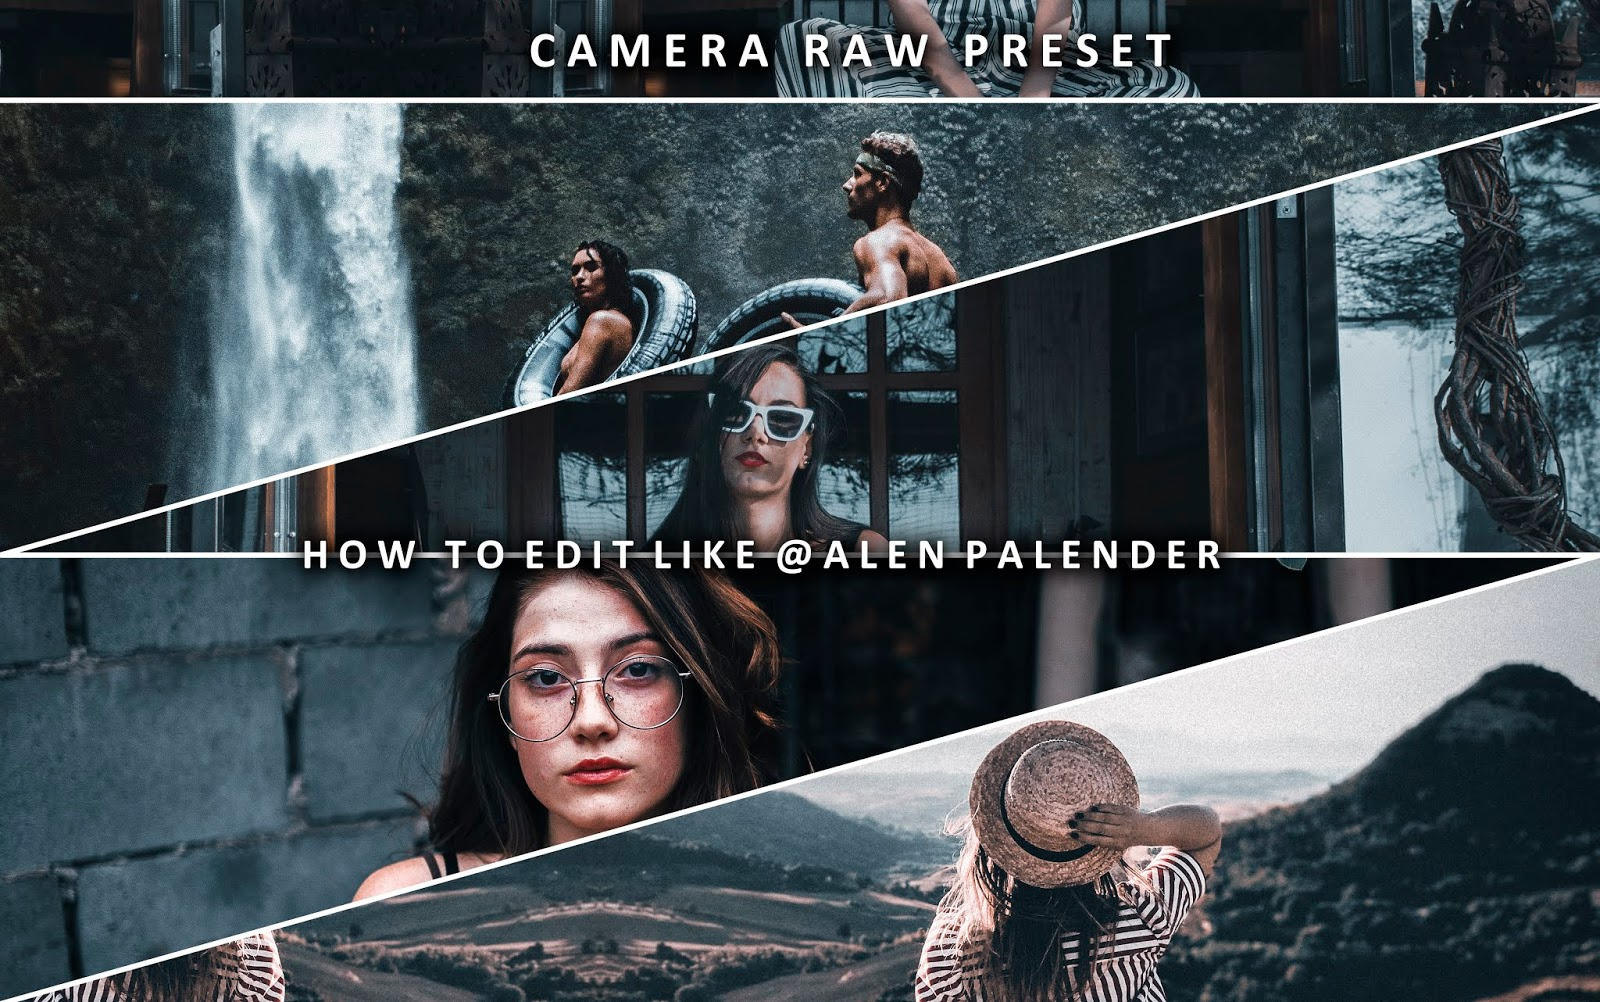 Download Alen Palender Camera Raw Presets for Free | How to Edit Photos Like Alen Palender in Photoshop